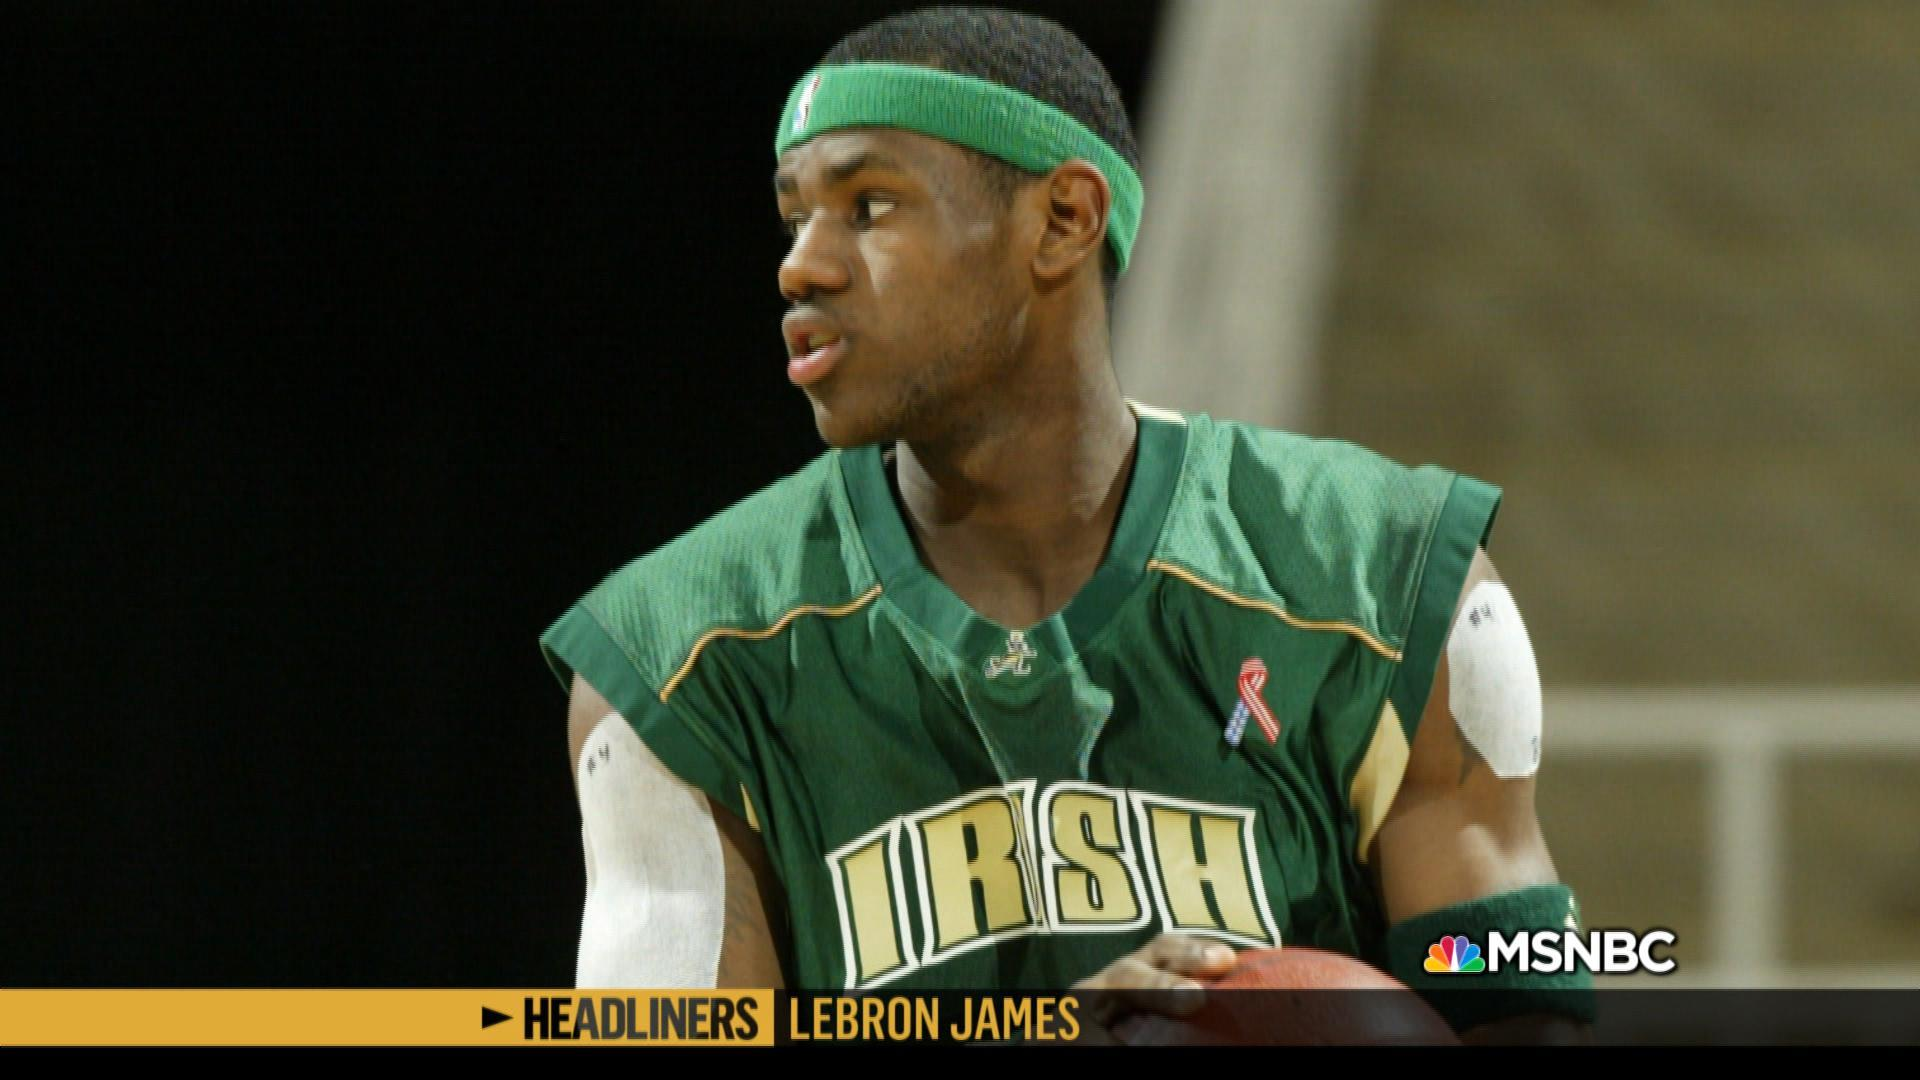 'Headliners: LeBron James' A High School Phenom